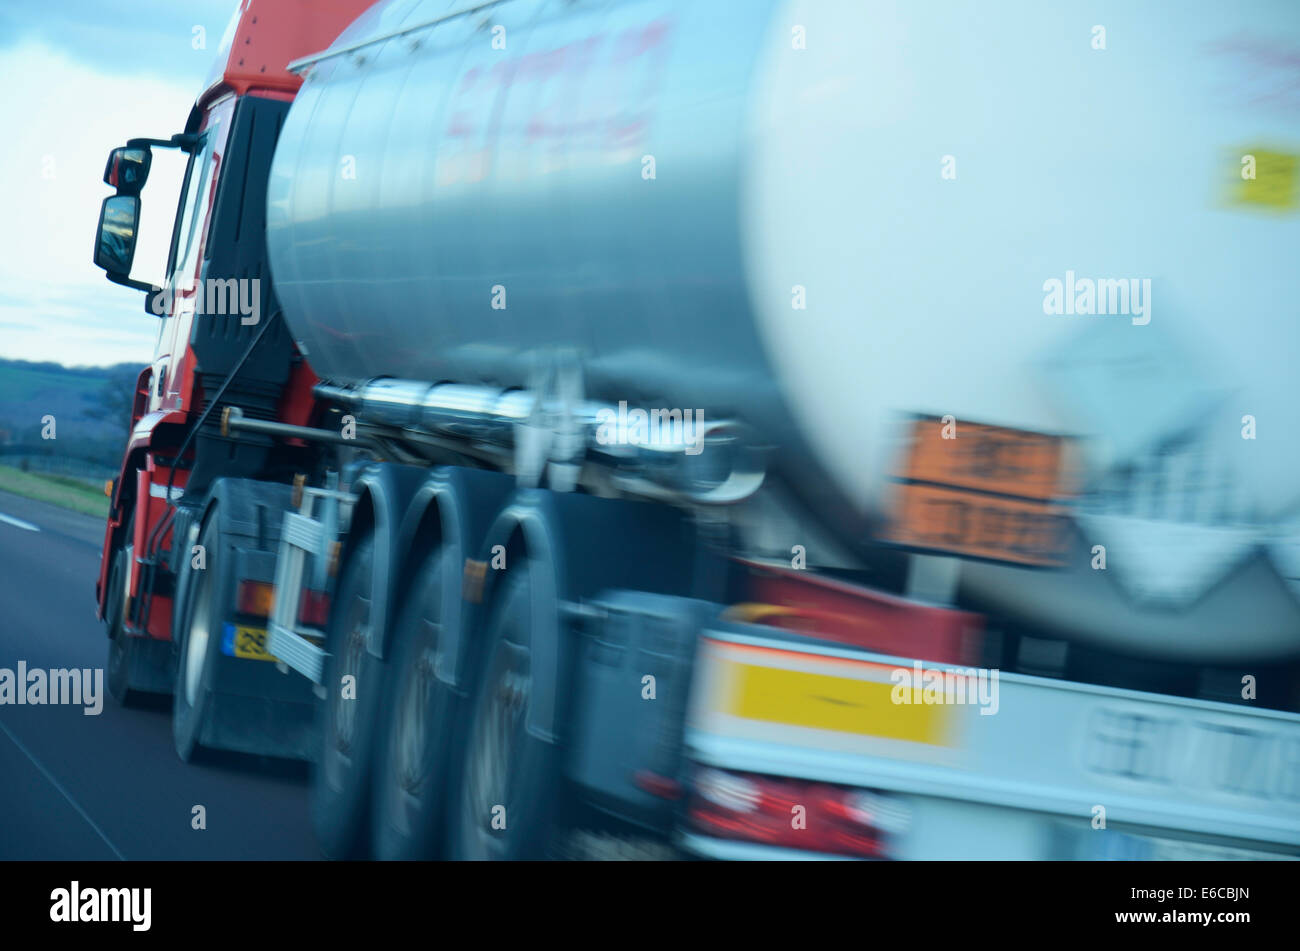 Speeding truck lorry driving on a motorway, France - Stock Image